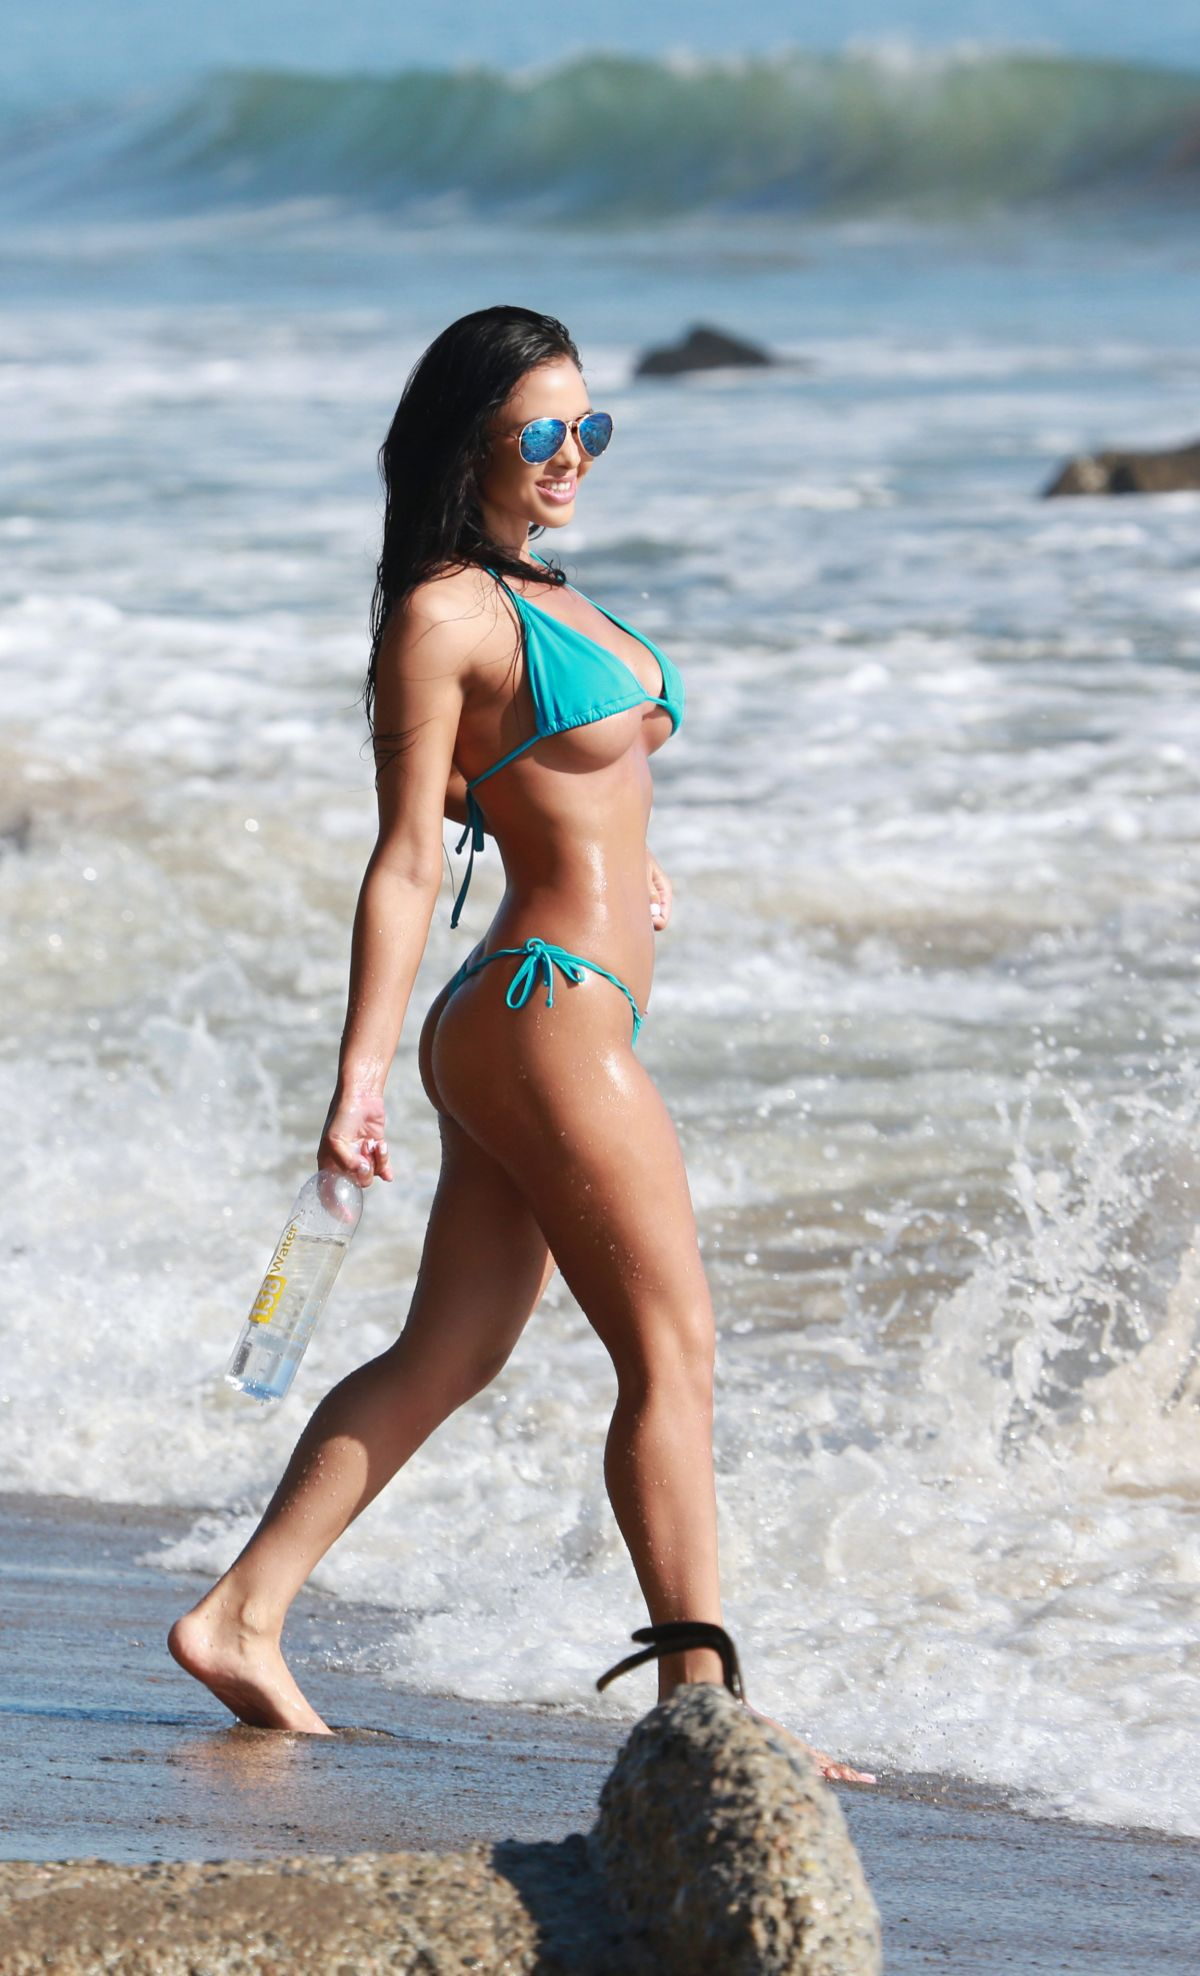 Fotos Val Fit naked (12 photos), Ass, Sideboobs, Boobs, swimsuit 2017